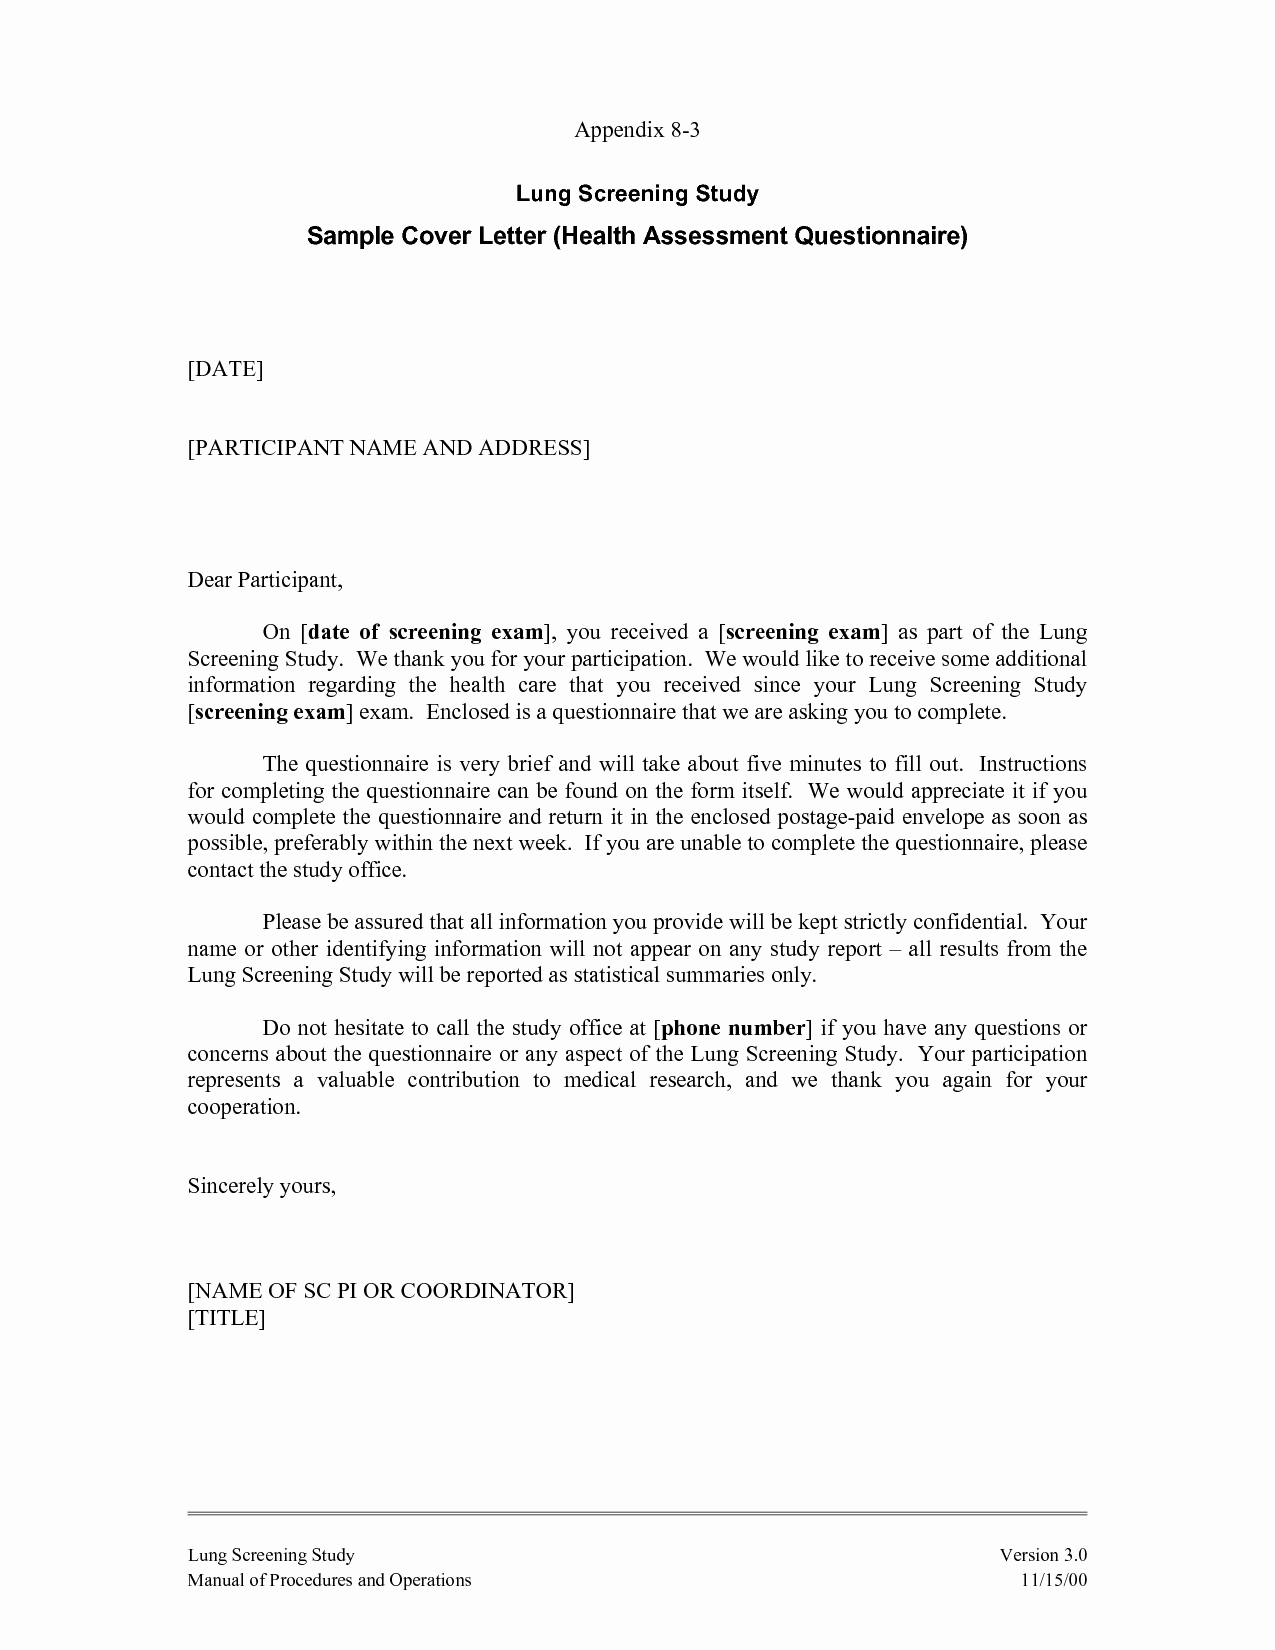 Best S Of Brief Cover Letter Sample Request